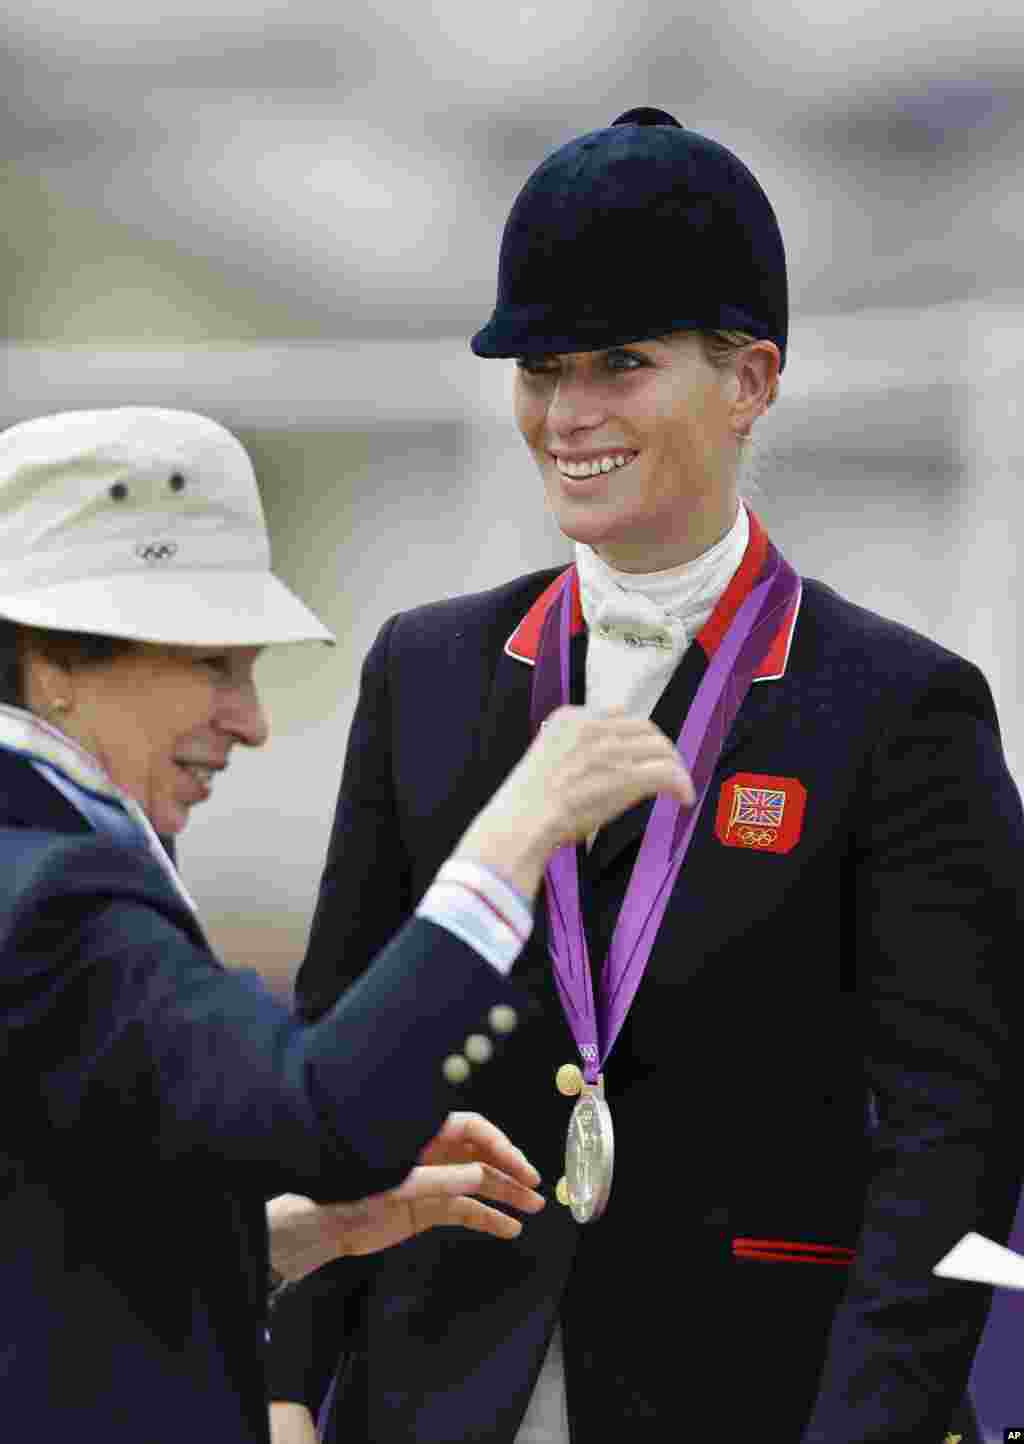 Britain's Zara Phillips, right, receives a silver medal from her mother Princess Anne, left, after Britain won silver in the team equestrian eventing competition at the 2012 Summer Olympics, July 31, 2012, at Greenwich Park in London.